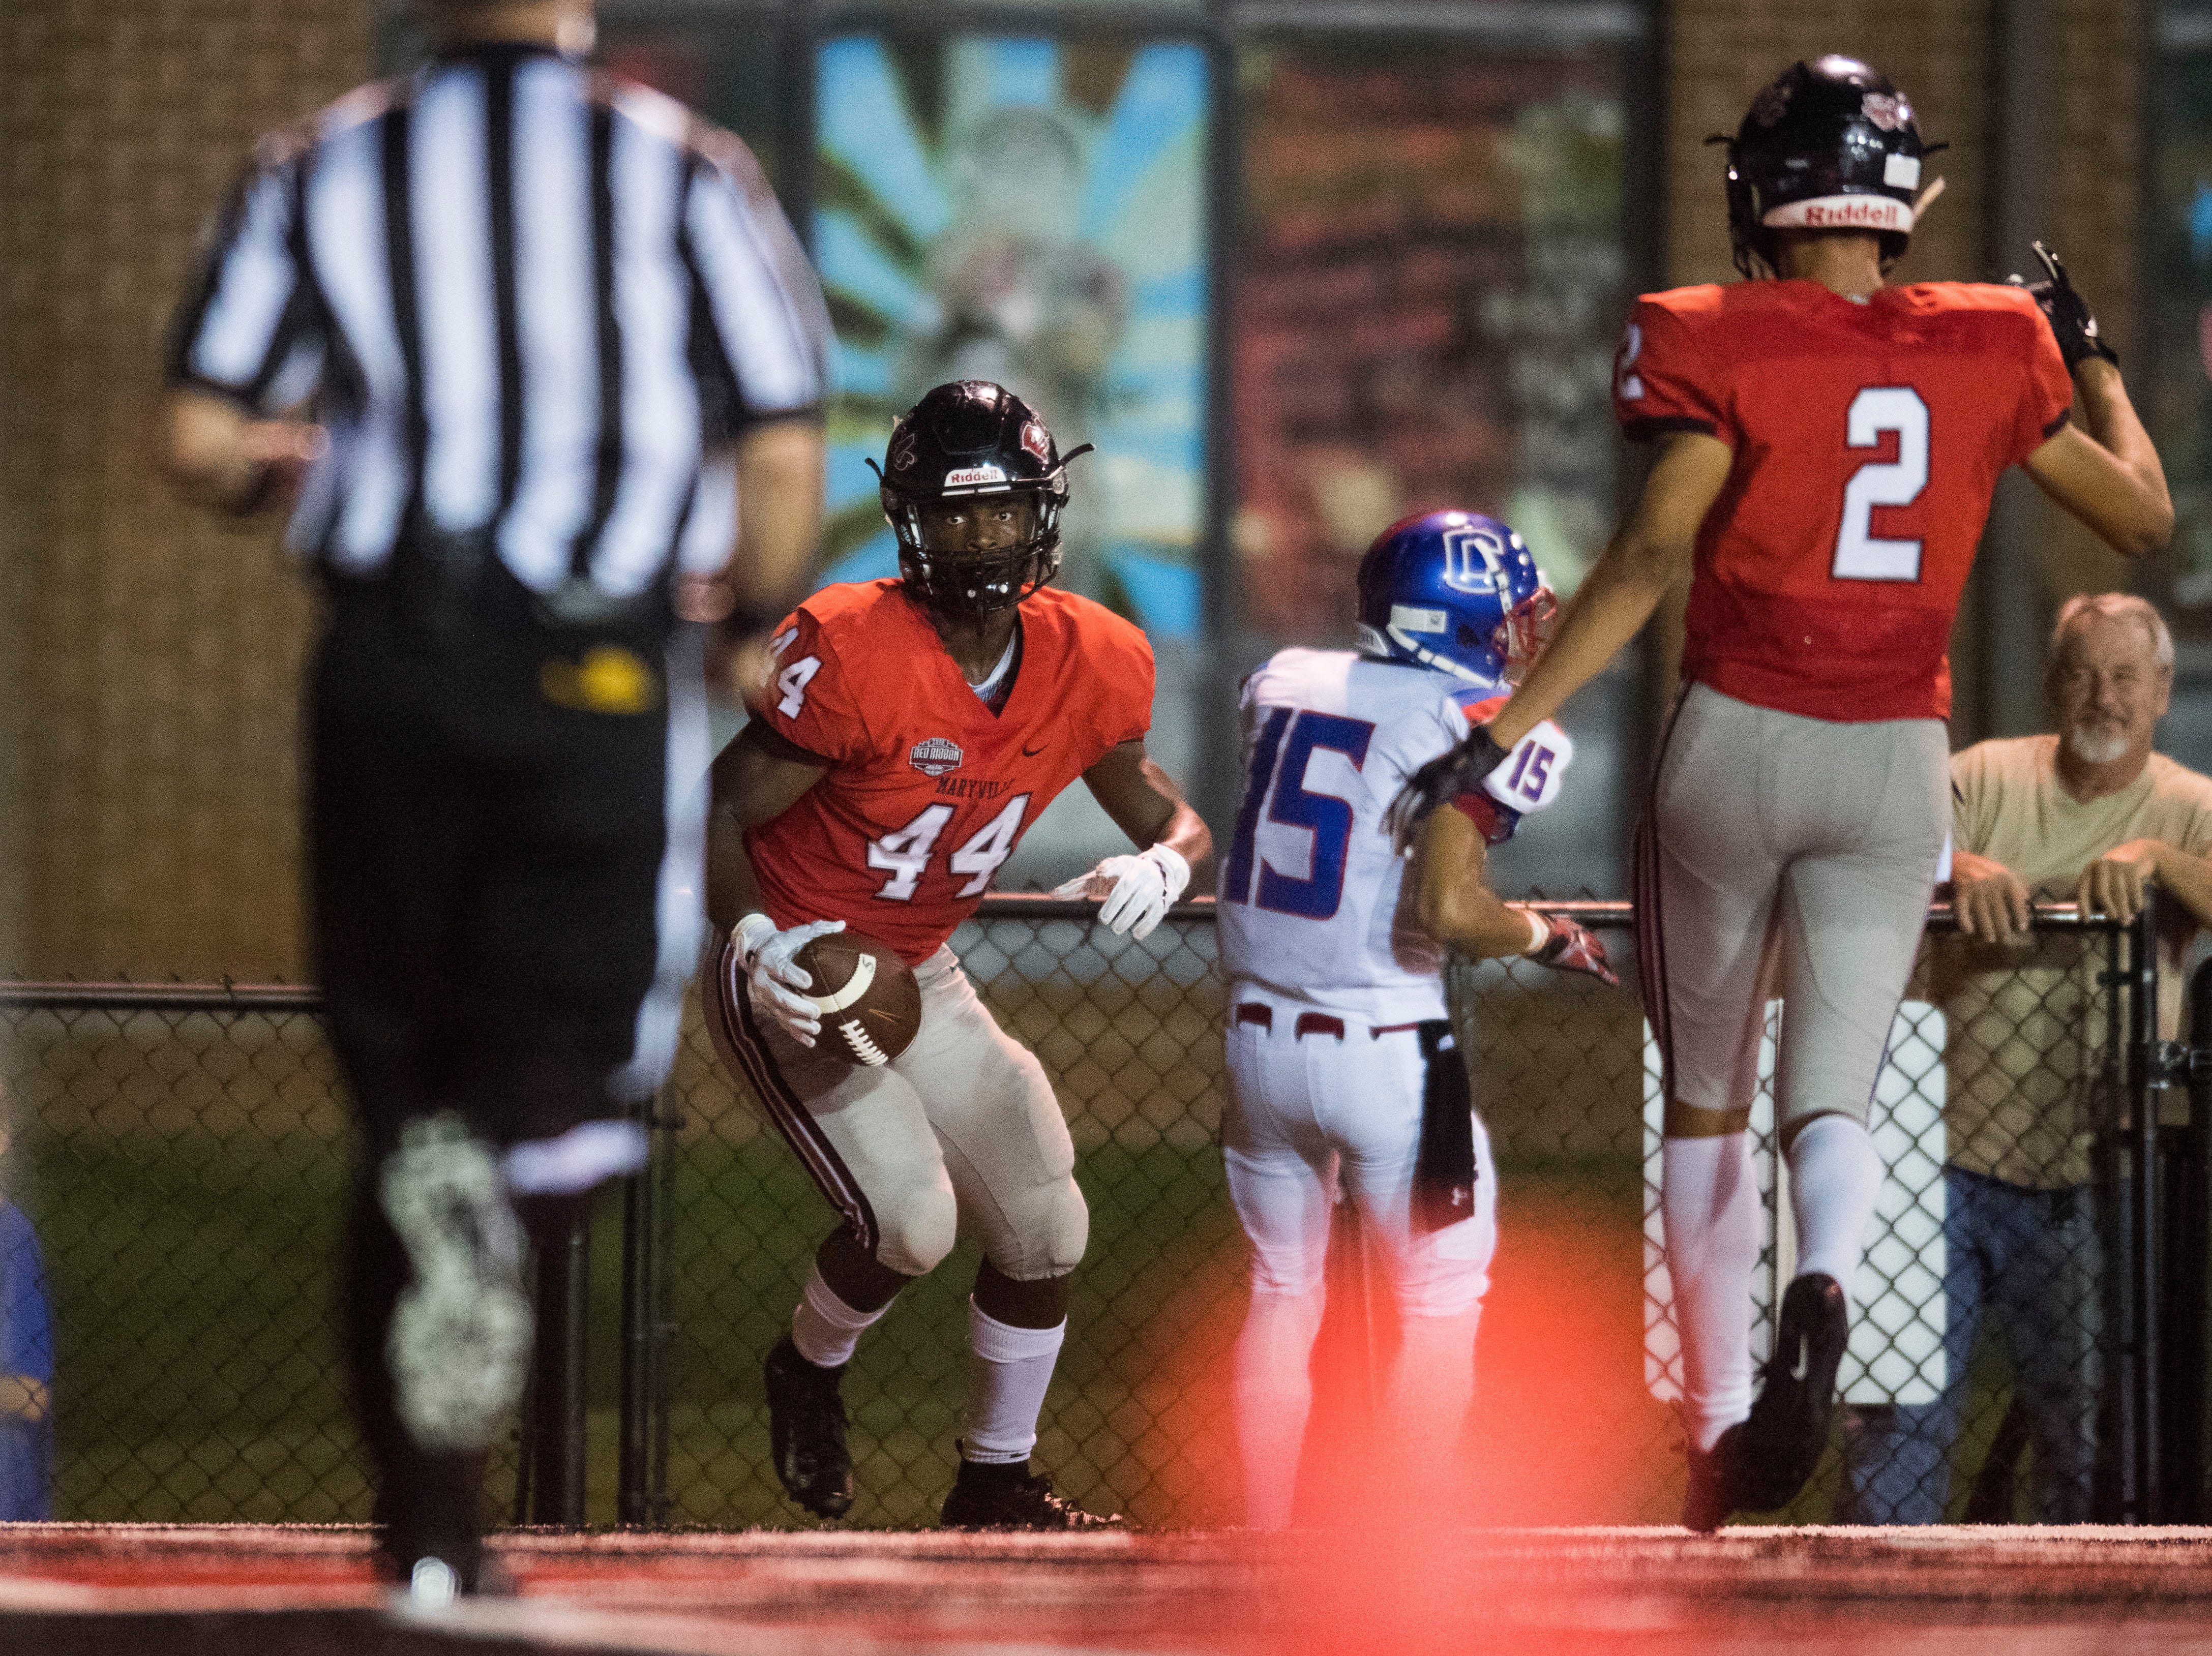 Maryville's Tee Hodge (44) makes a touchdown during a game between Cleveland and Maryville at Maryville Thursday, Oct. 4, 2018. Maryville defeated Cleveland 42-7.